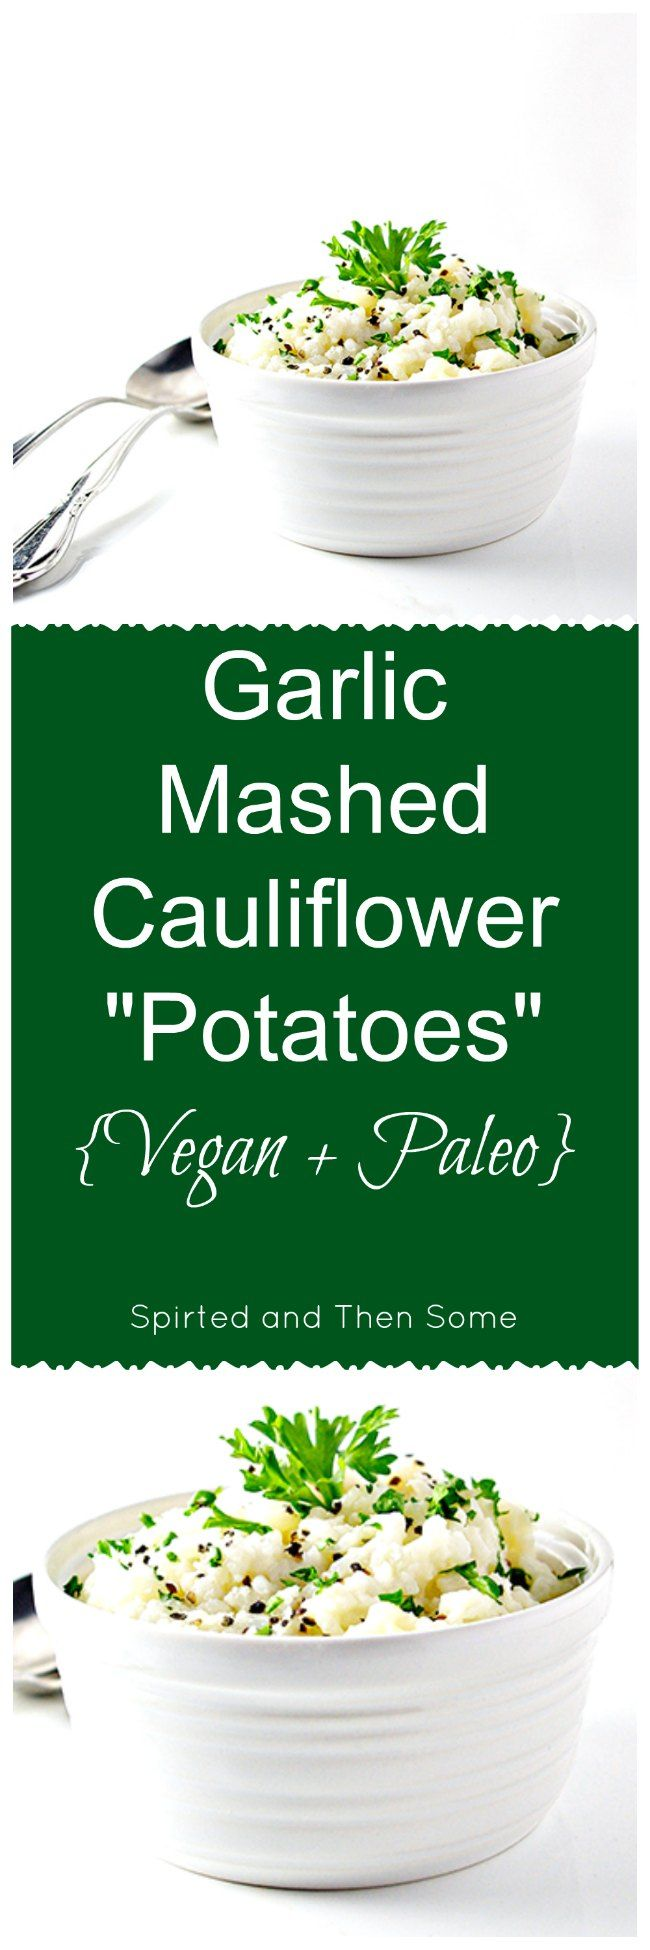 Garlic Mashed Cauliflower Potatoes are a delicious vegan and paleo way to get your vegetables!   spiritedandthensome.com